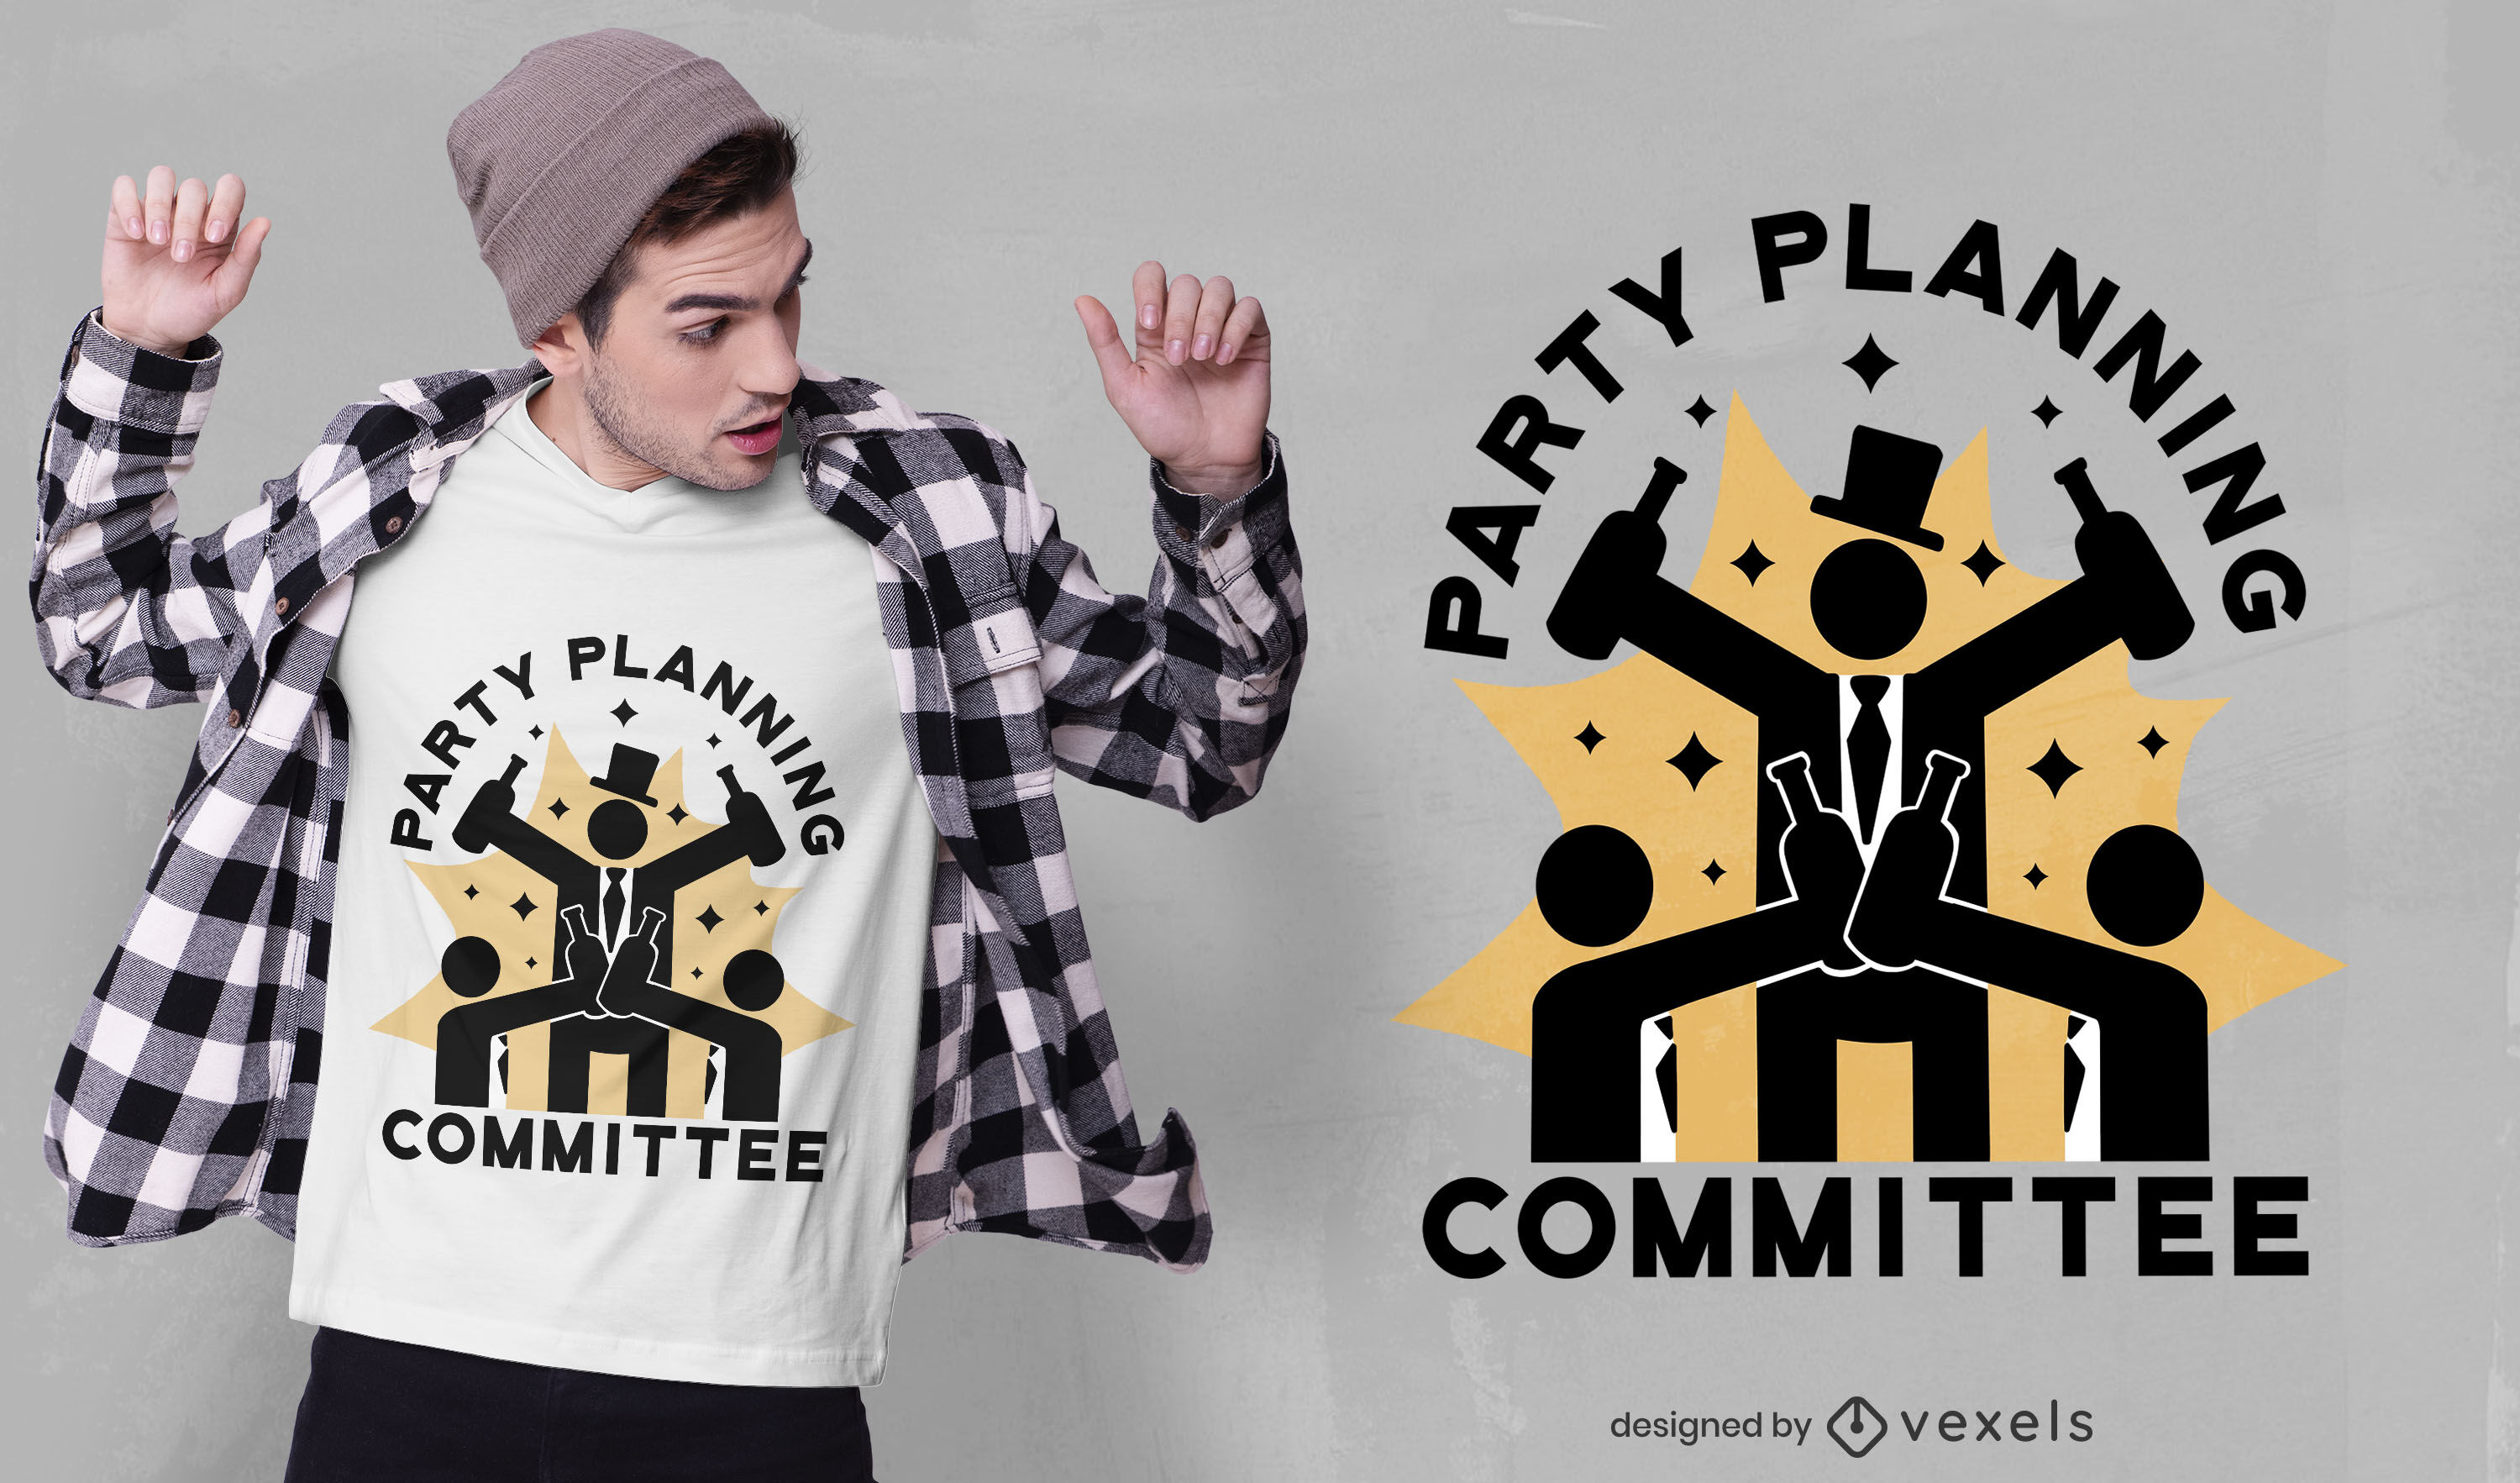 Party planning committee t-shirt design